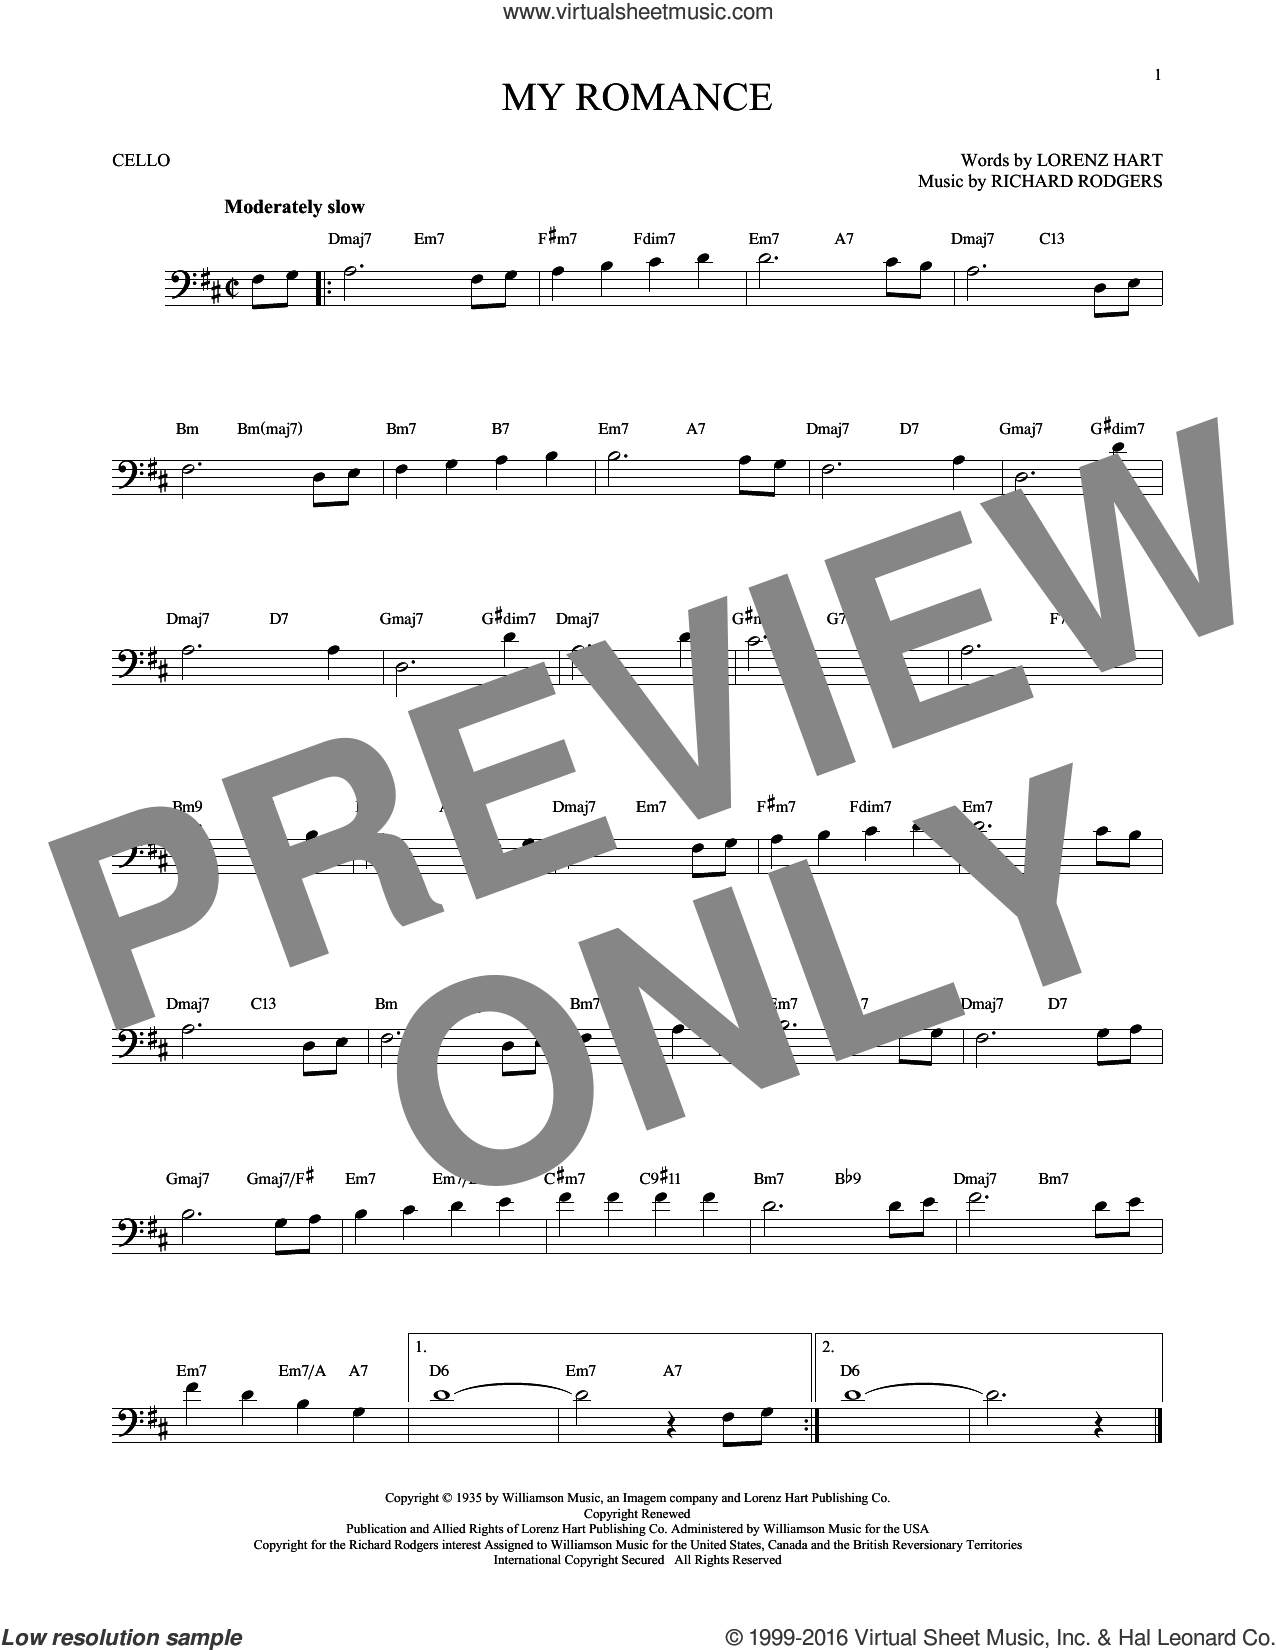 My Romance sheet music for cello solo by Richard Rodgers